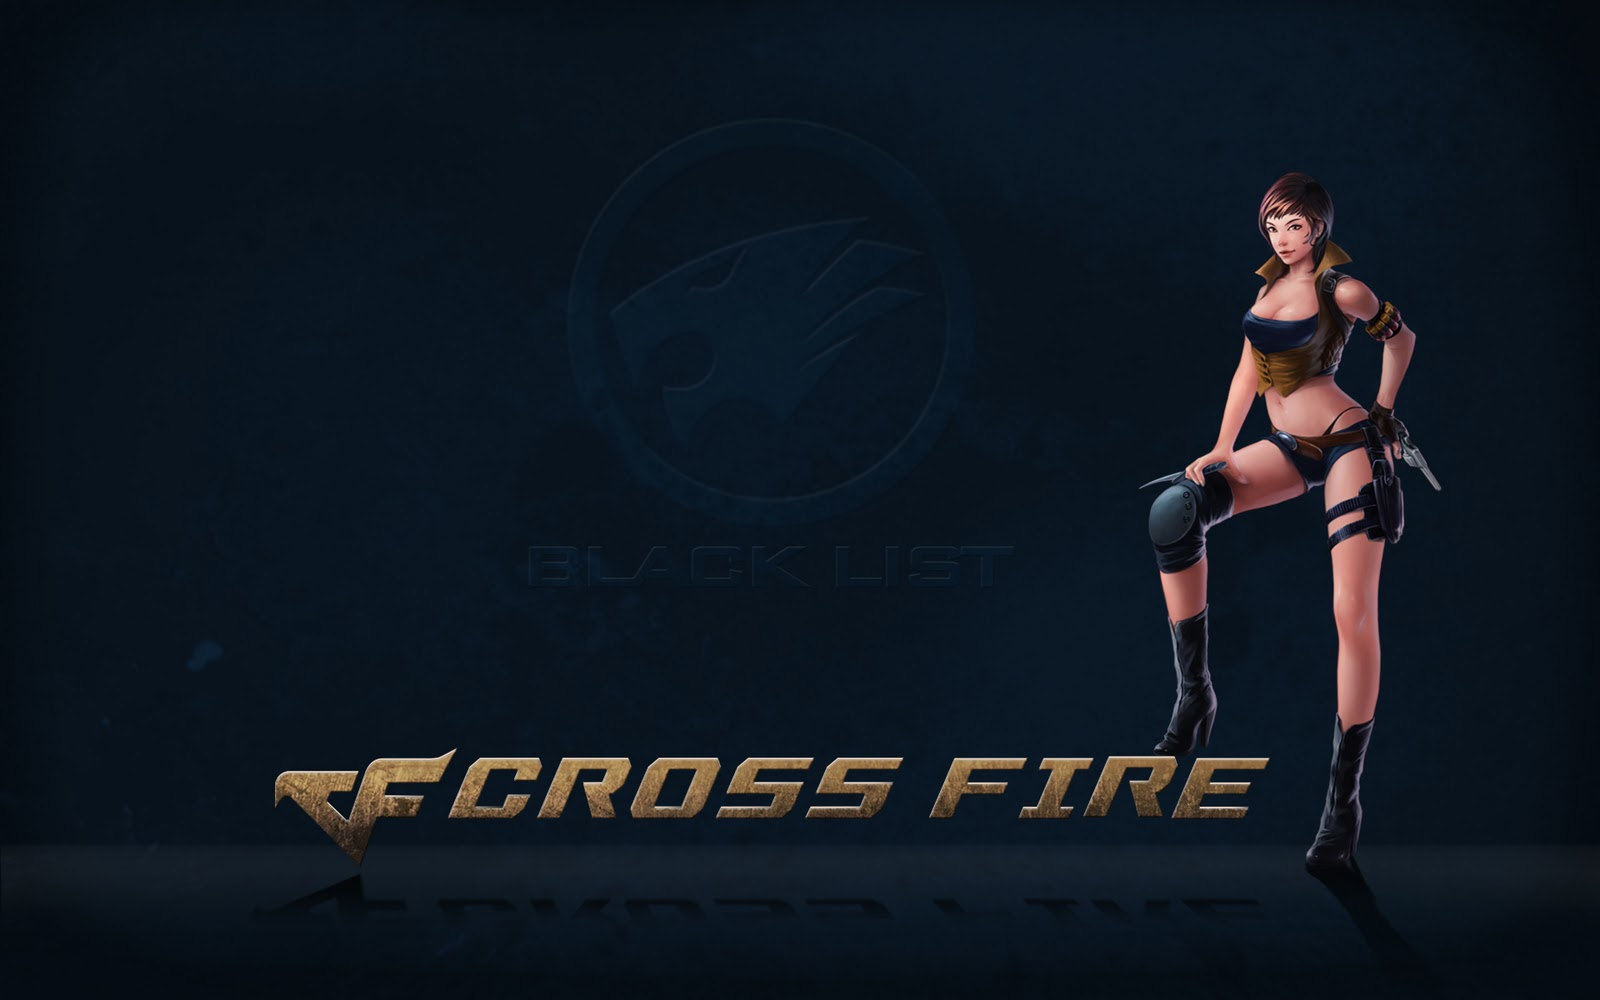 wallpaper crossfire collection 2011 - photo #23